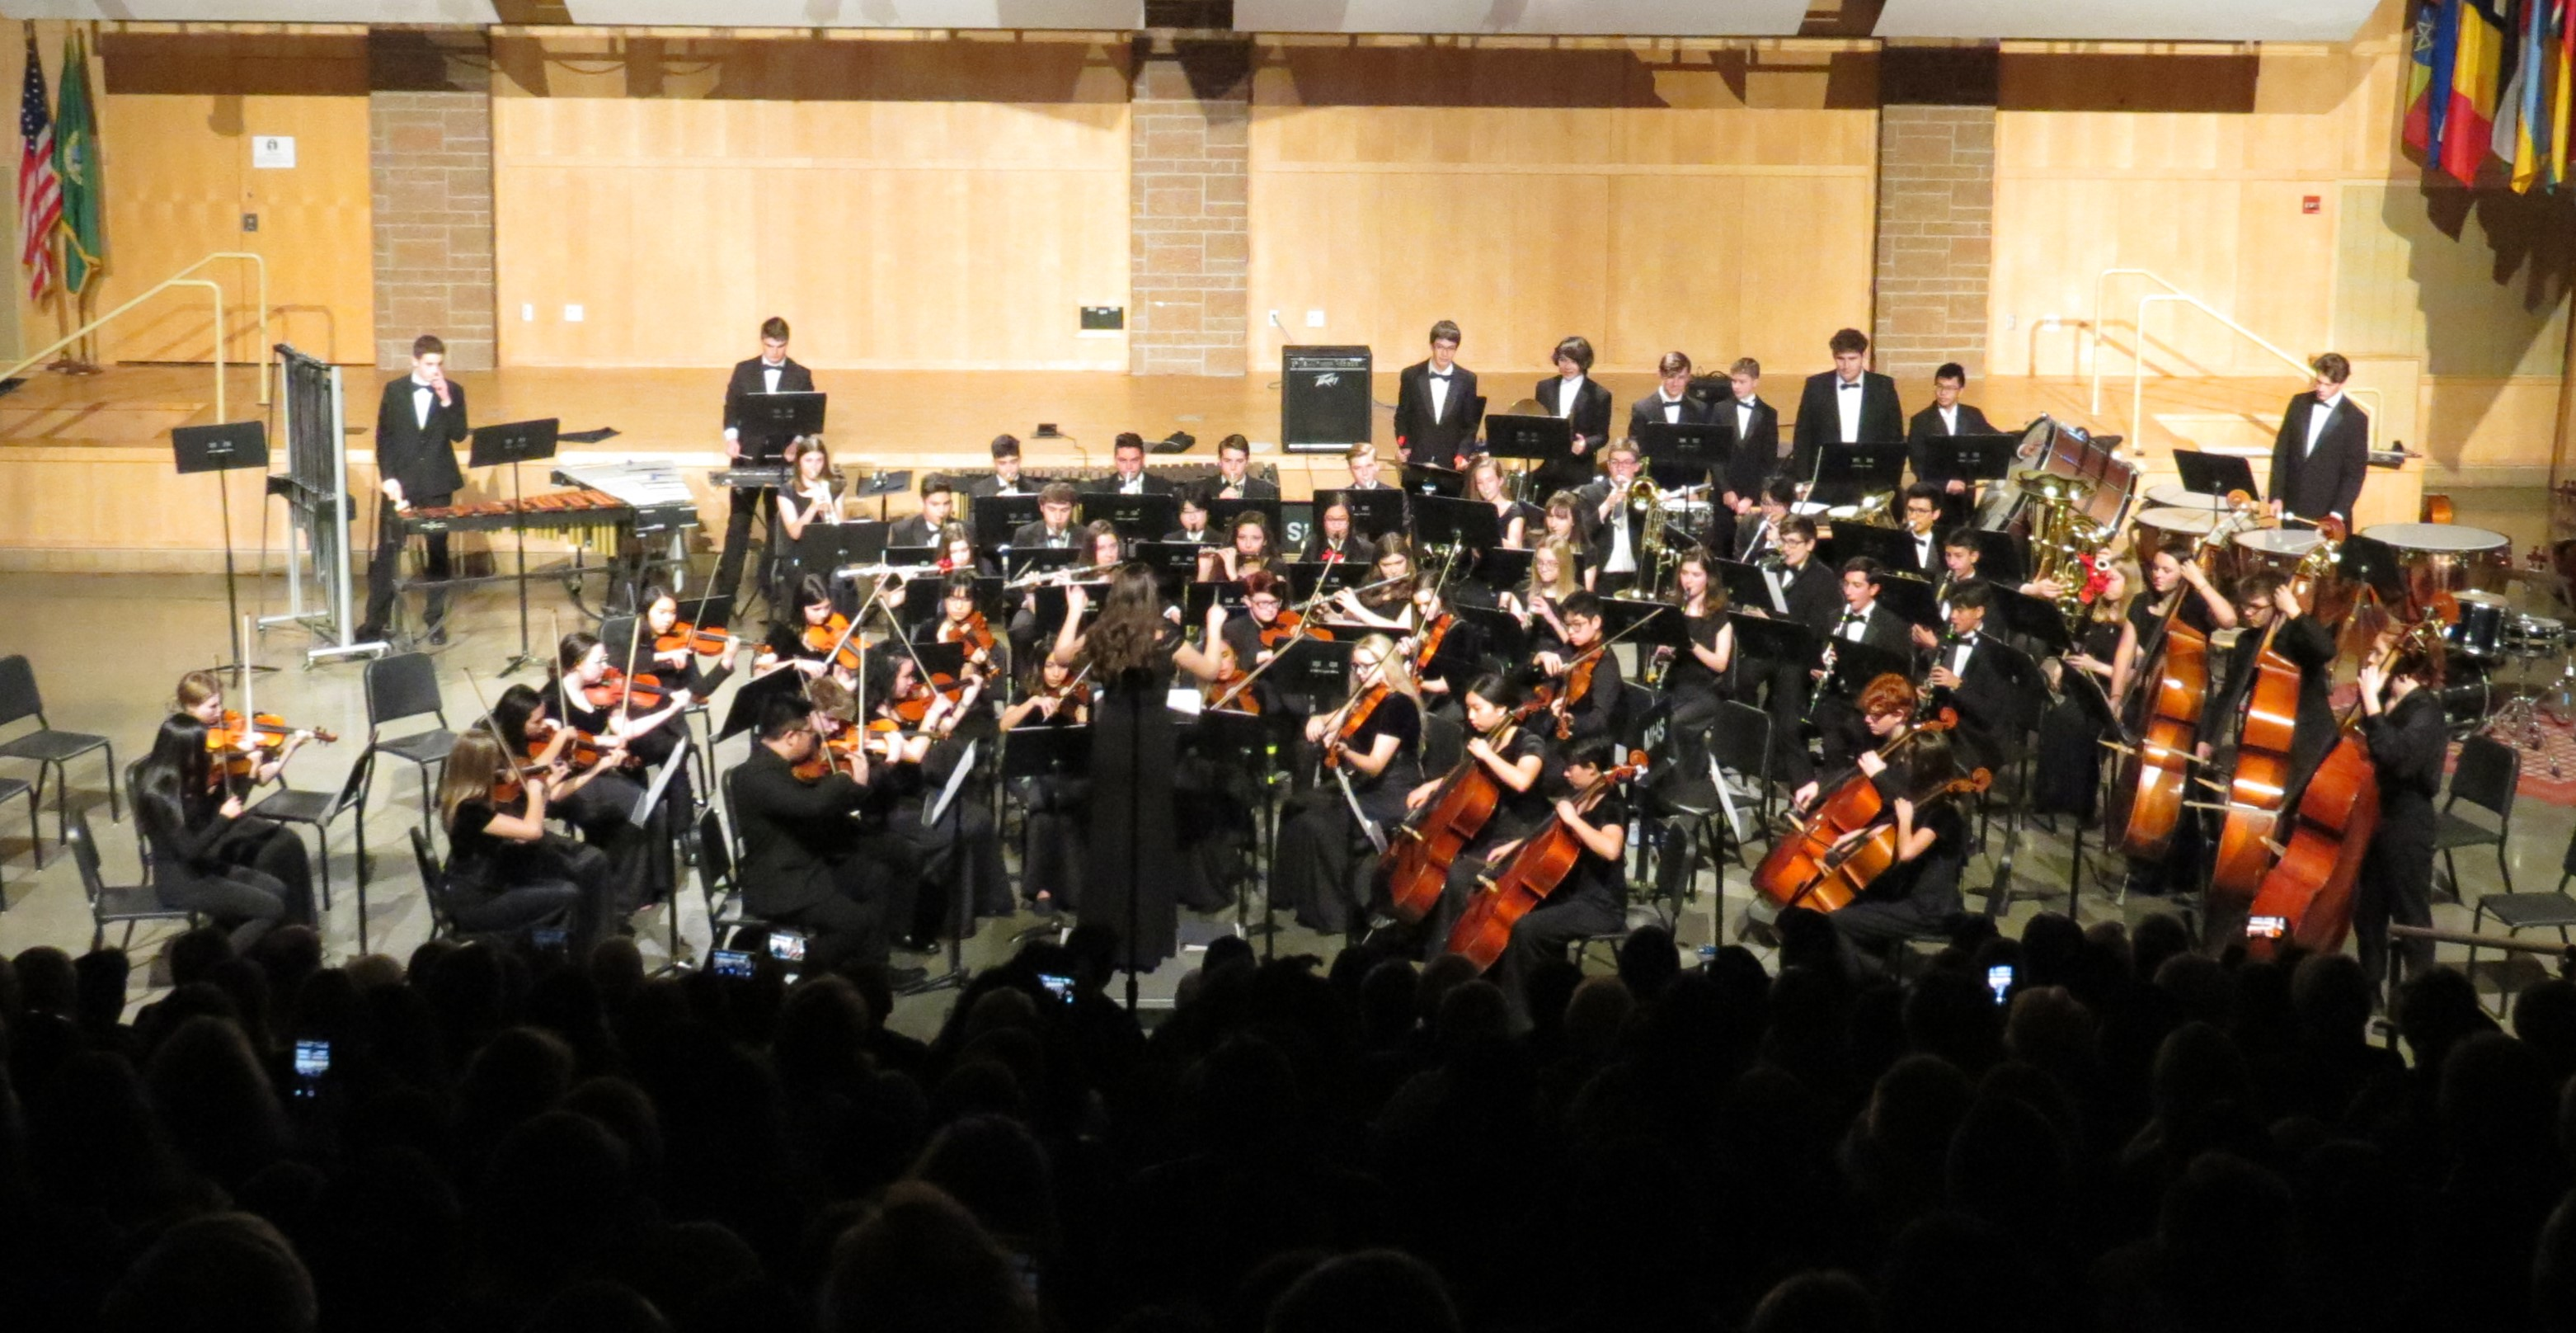 IMG_6052 - Full Orchestra